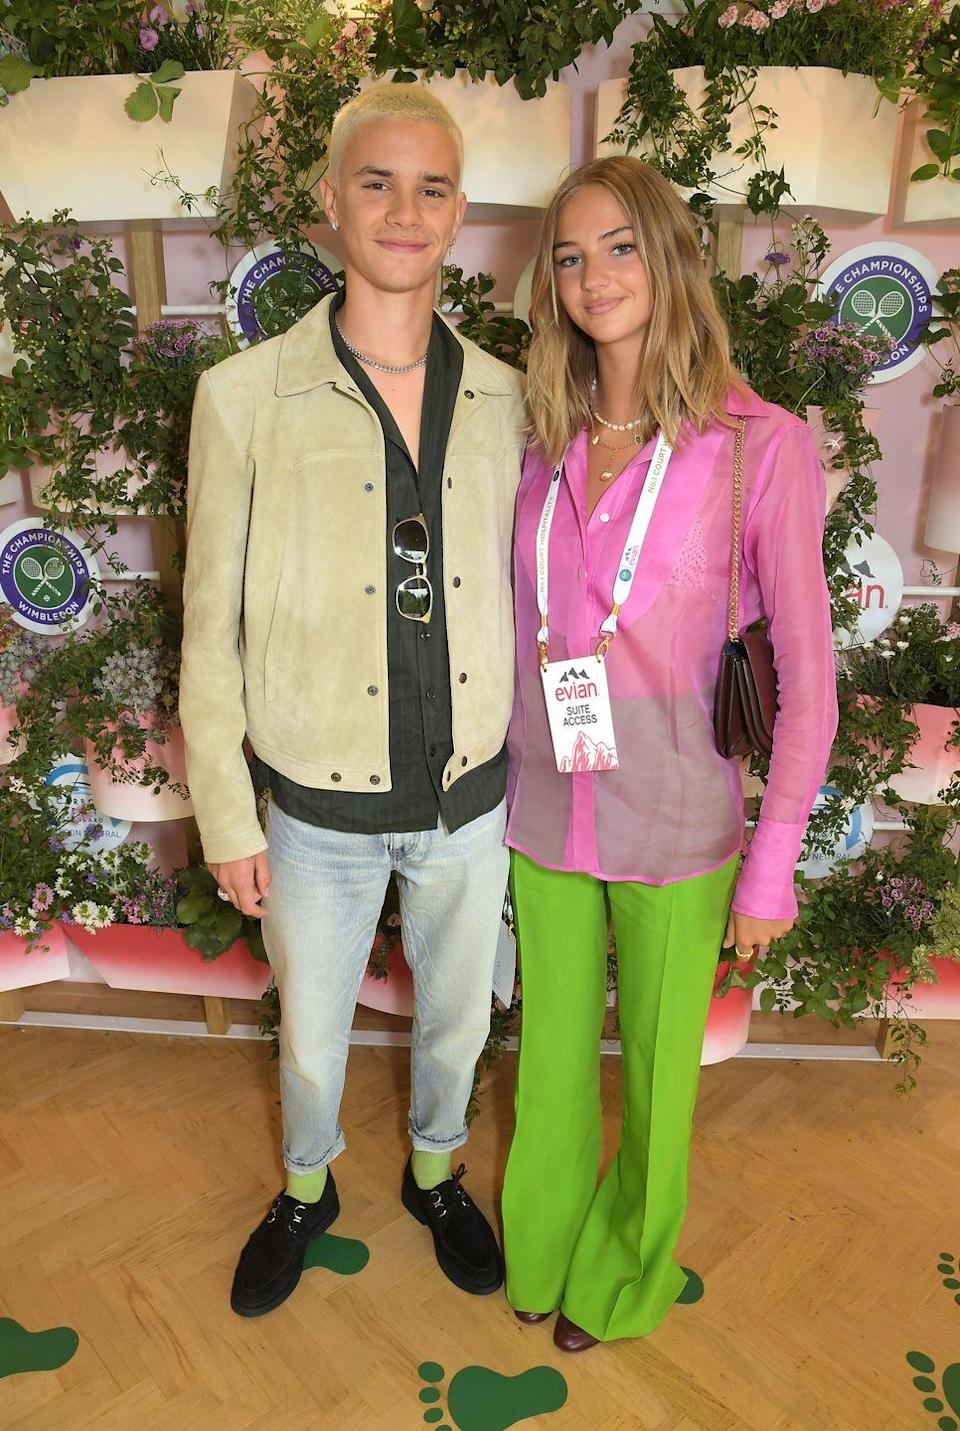 <p>Romeo Beckham attended day one of the tournament with his model girlfriend Mia Regan, who wore acid brights. </p>